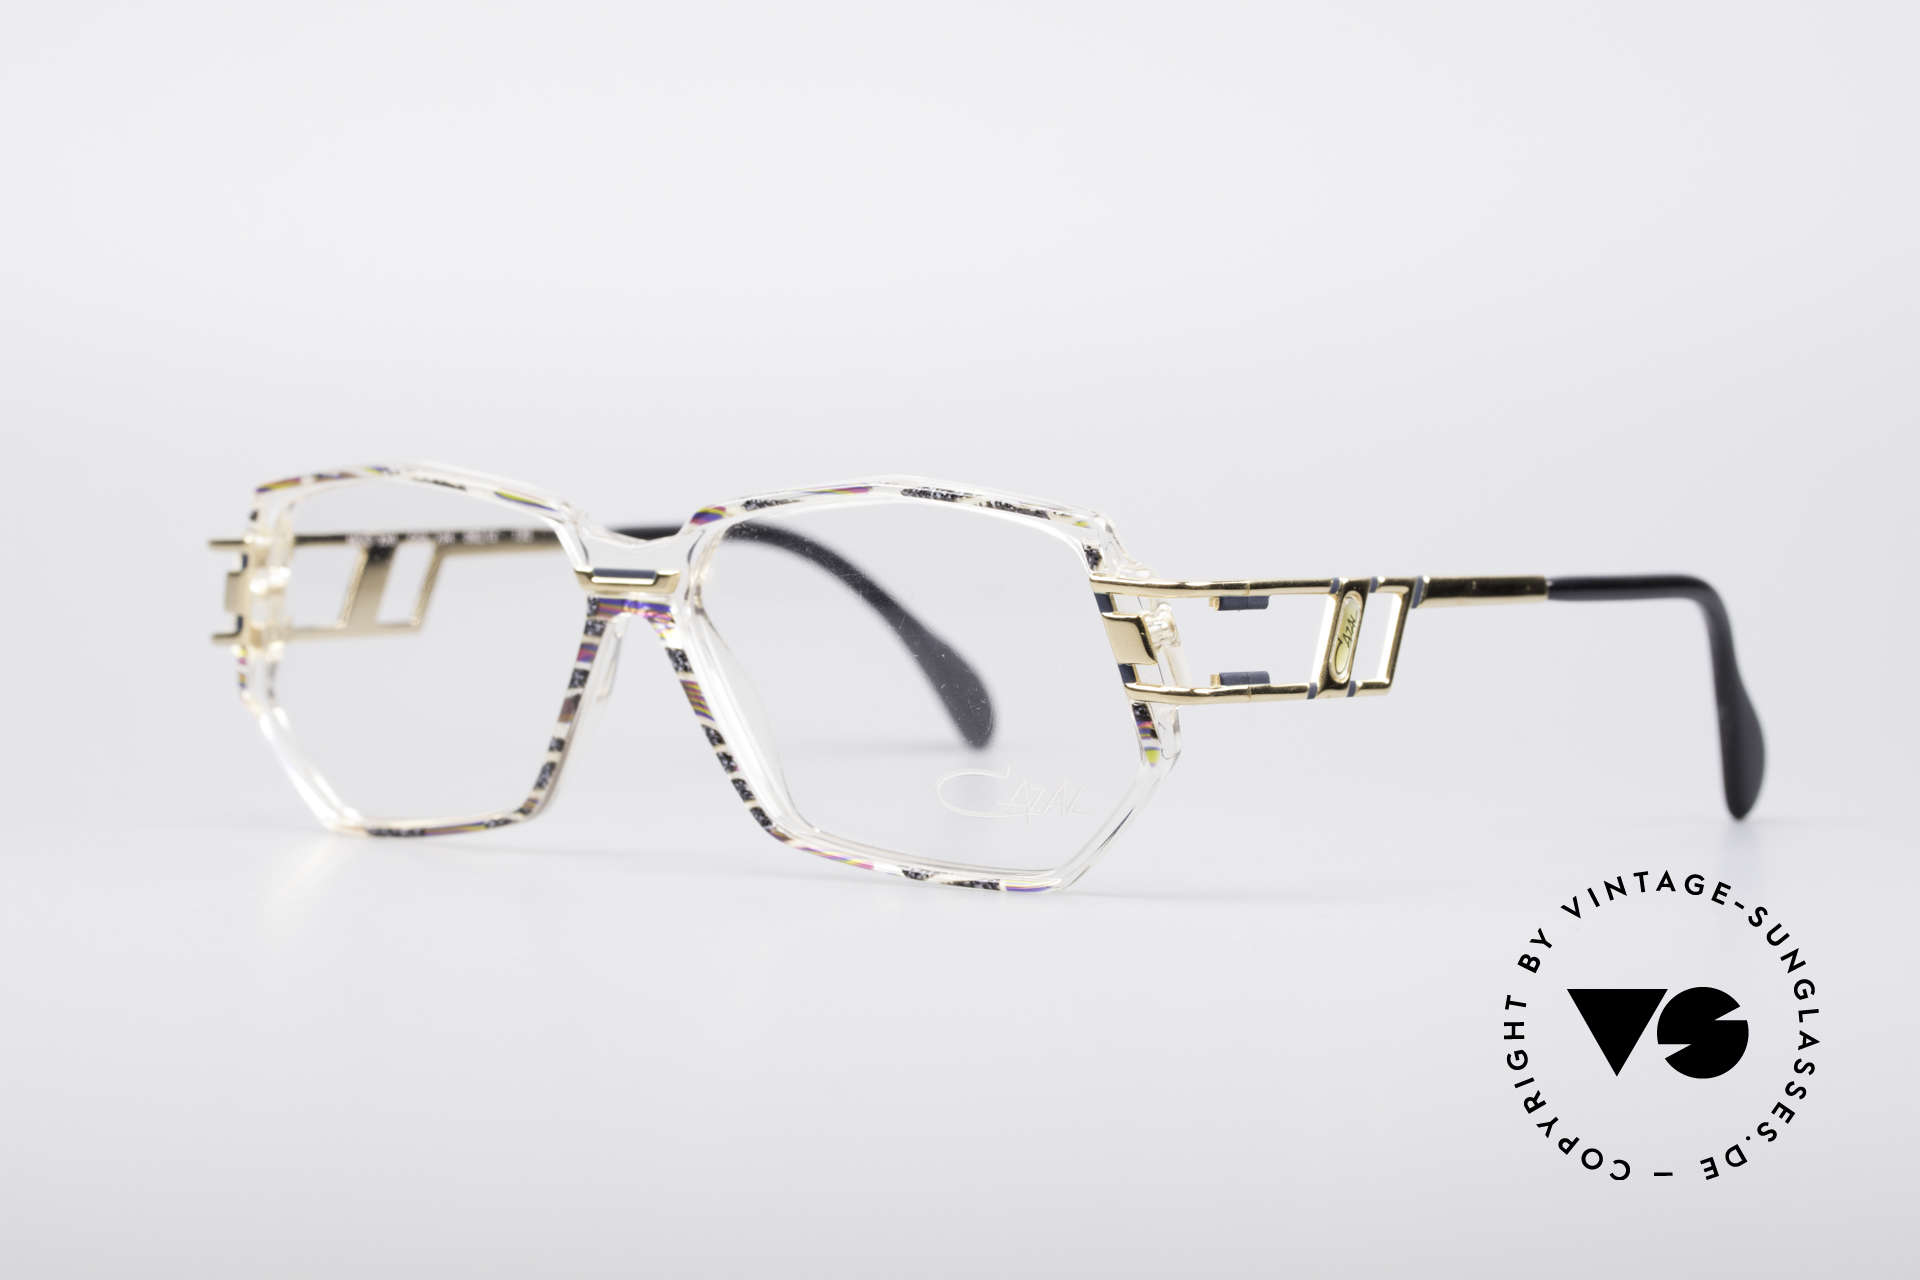 Cazal 359 90's Hip Hop Eyeglasses, color description: granite-olive-fuchsia / crystal / gold, Made for Women